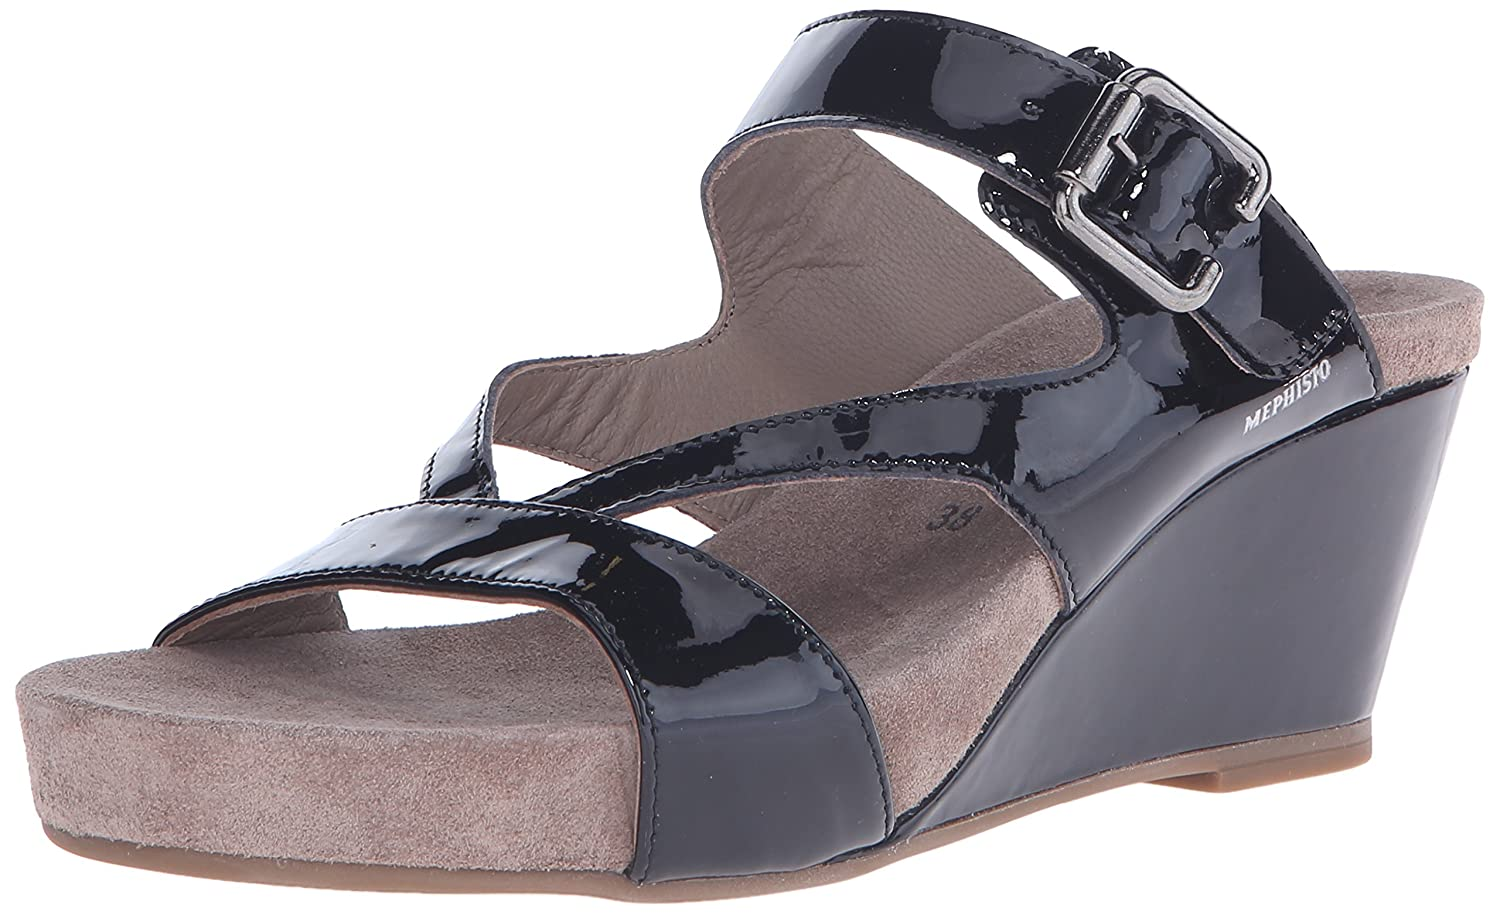 3b564119f14 Mephisto womens beatrix wedge sandal platforms wedges jpg 1500x915 Mephisto  wedge sandals